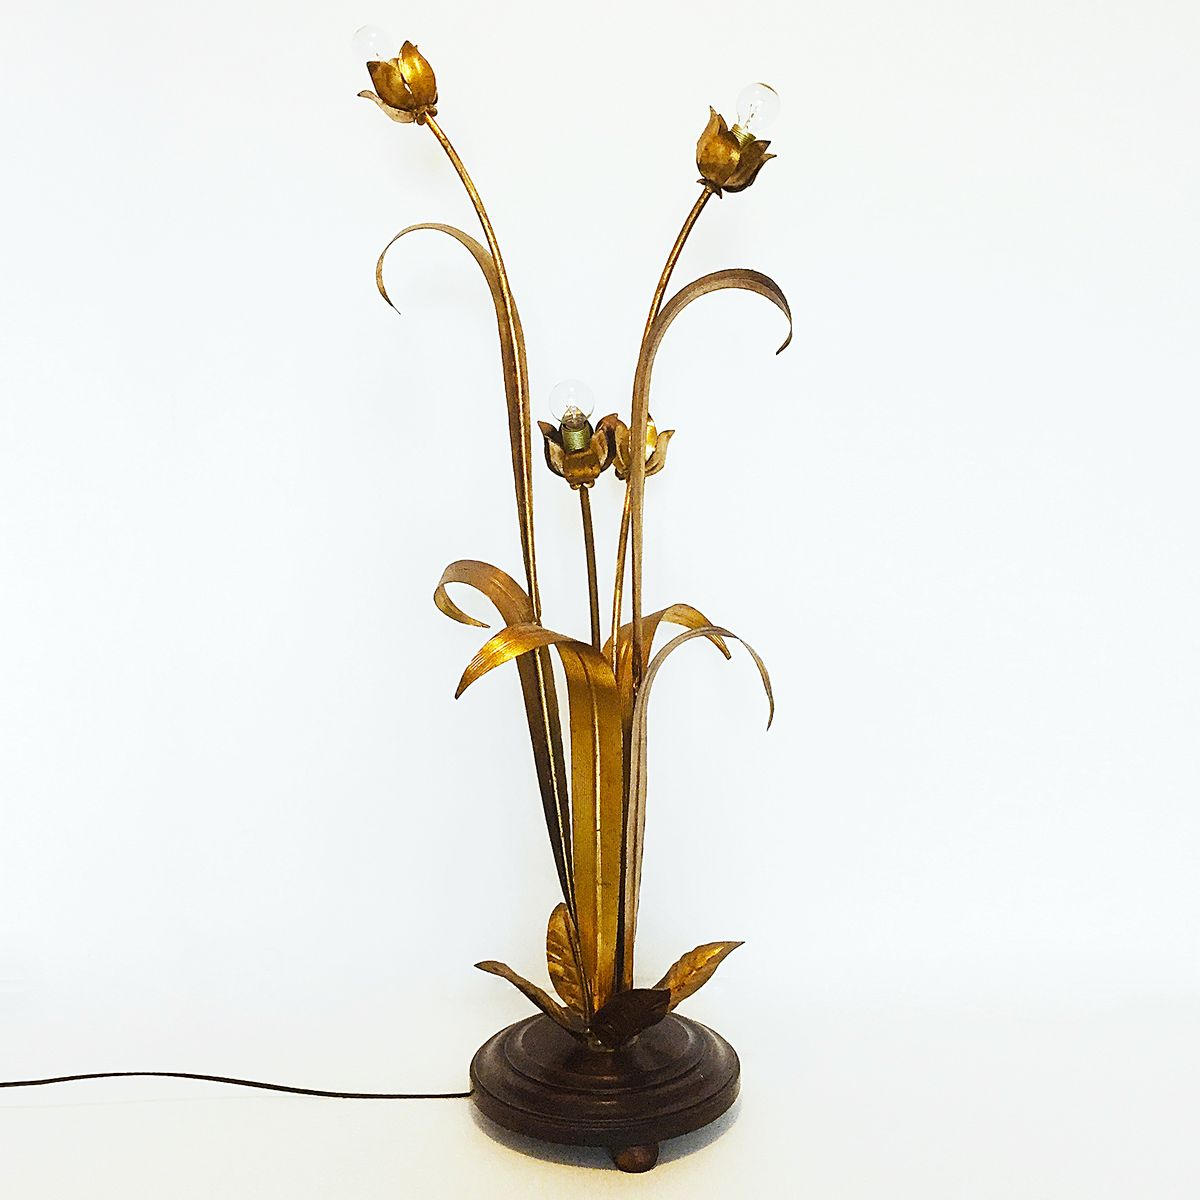 Gilded Flower Leaf Floor Lamp, 1960s for sale at Pamono